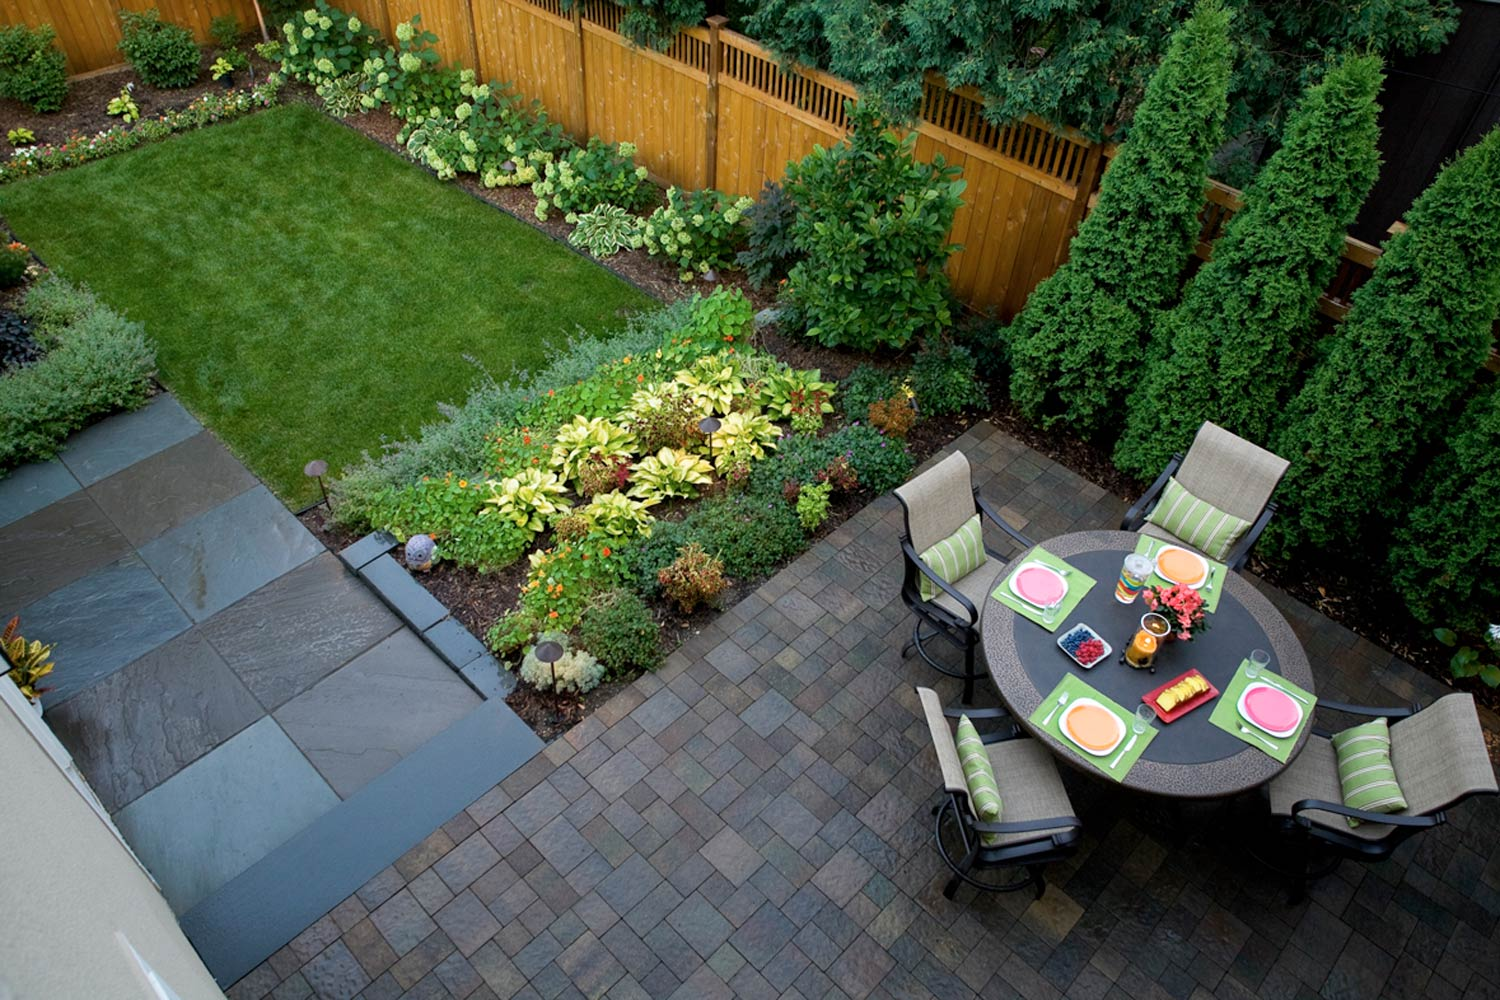 Contemporary formal backyard with edible and decorative plants in the garden.